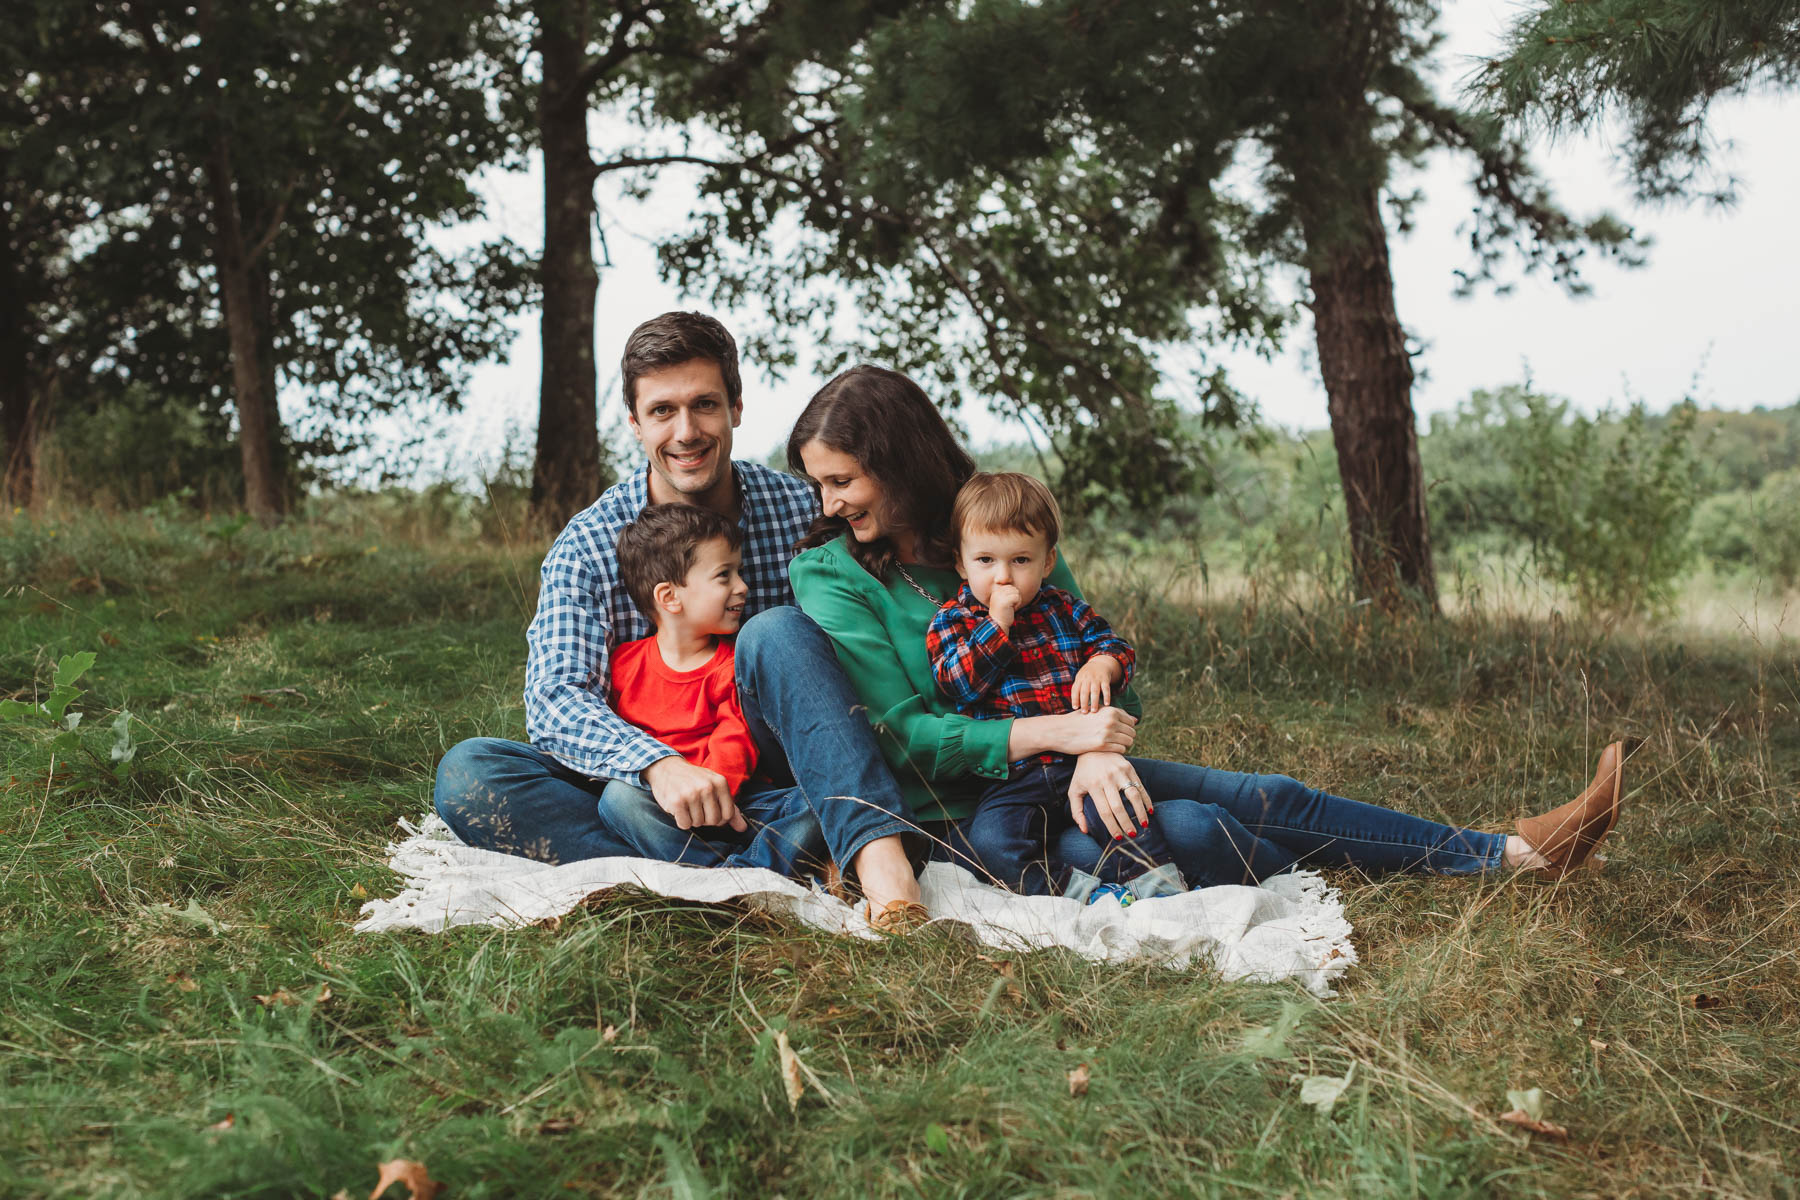 Everyone wants those quintessential New England family photos in the fall. Here's how to make sure you get a spot and love your photos. Boston lifestyle photographer Joy LeDuc.